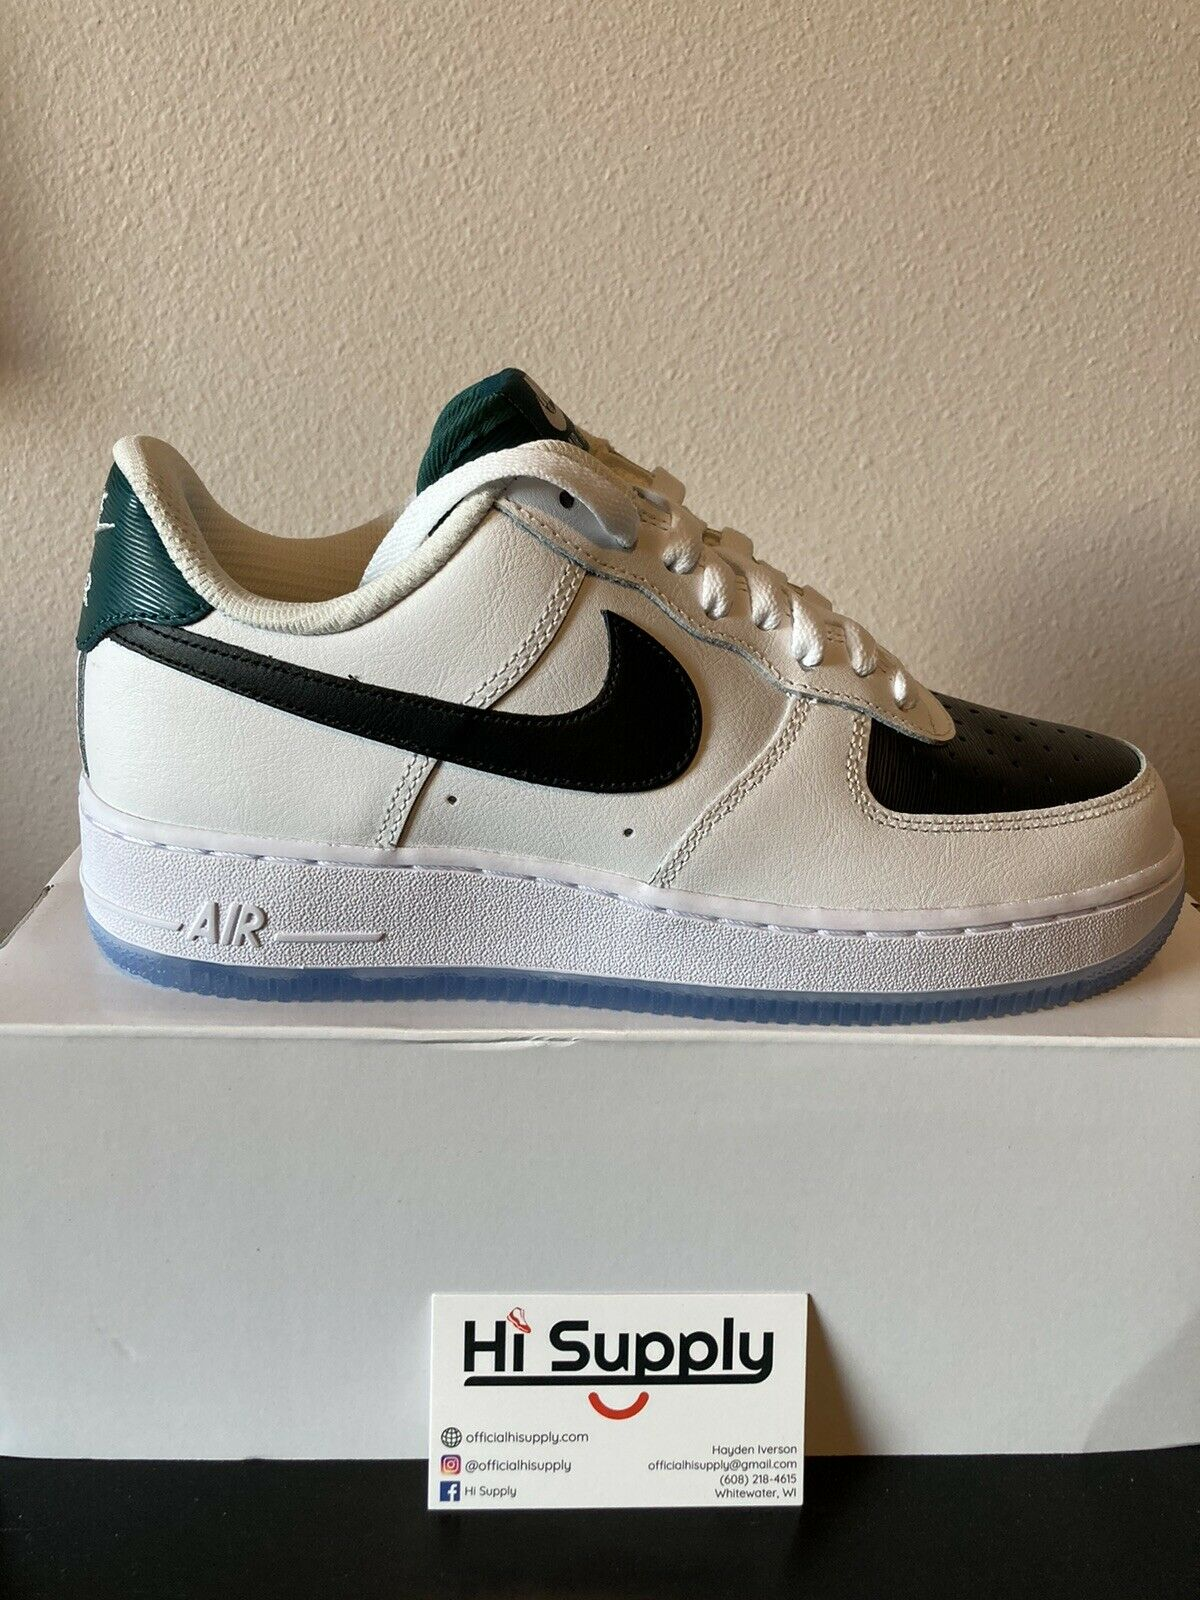 nike air force women's size 7